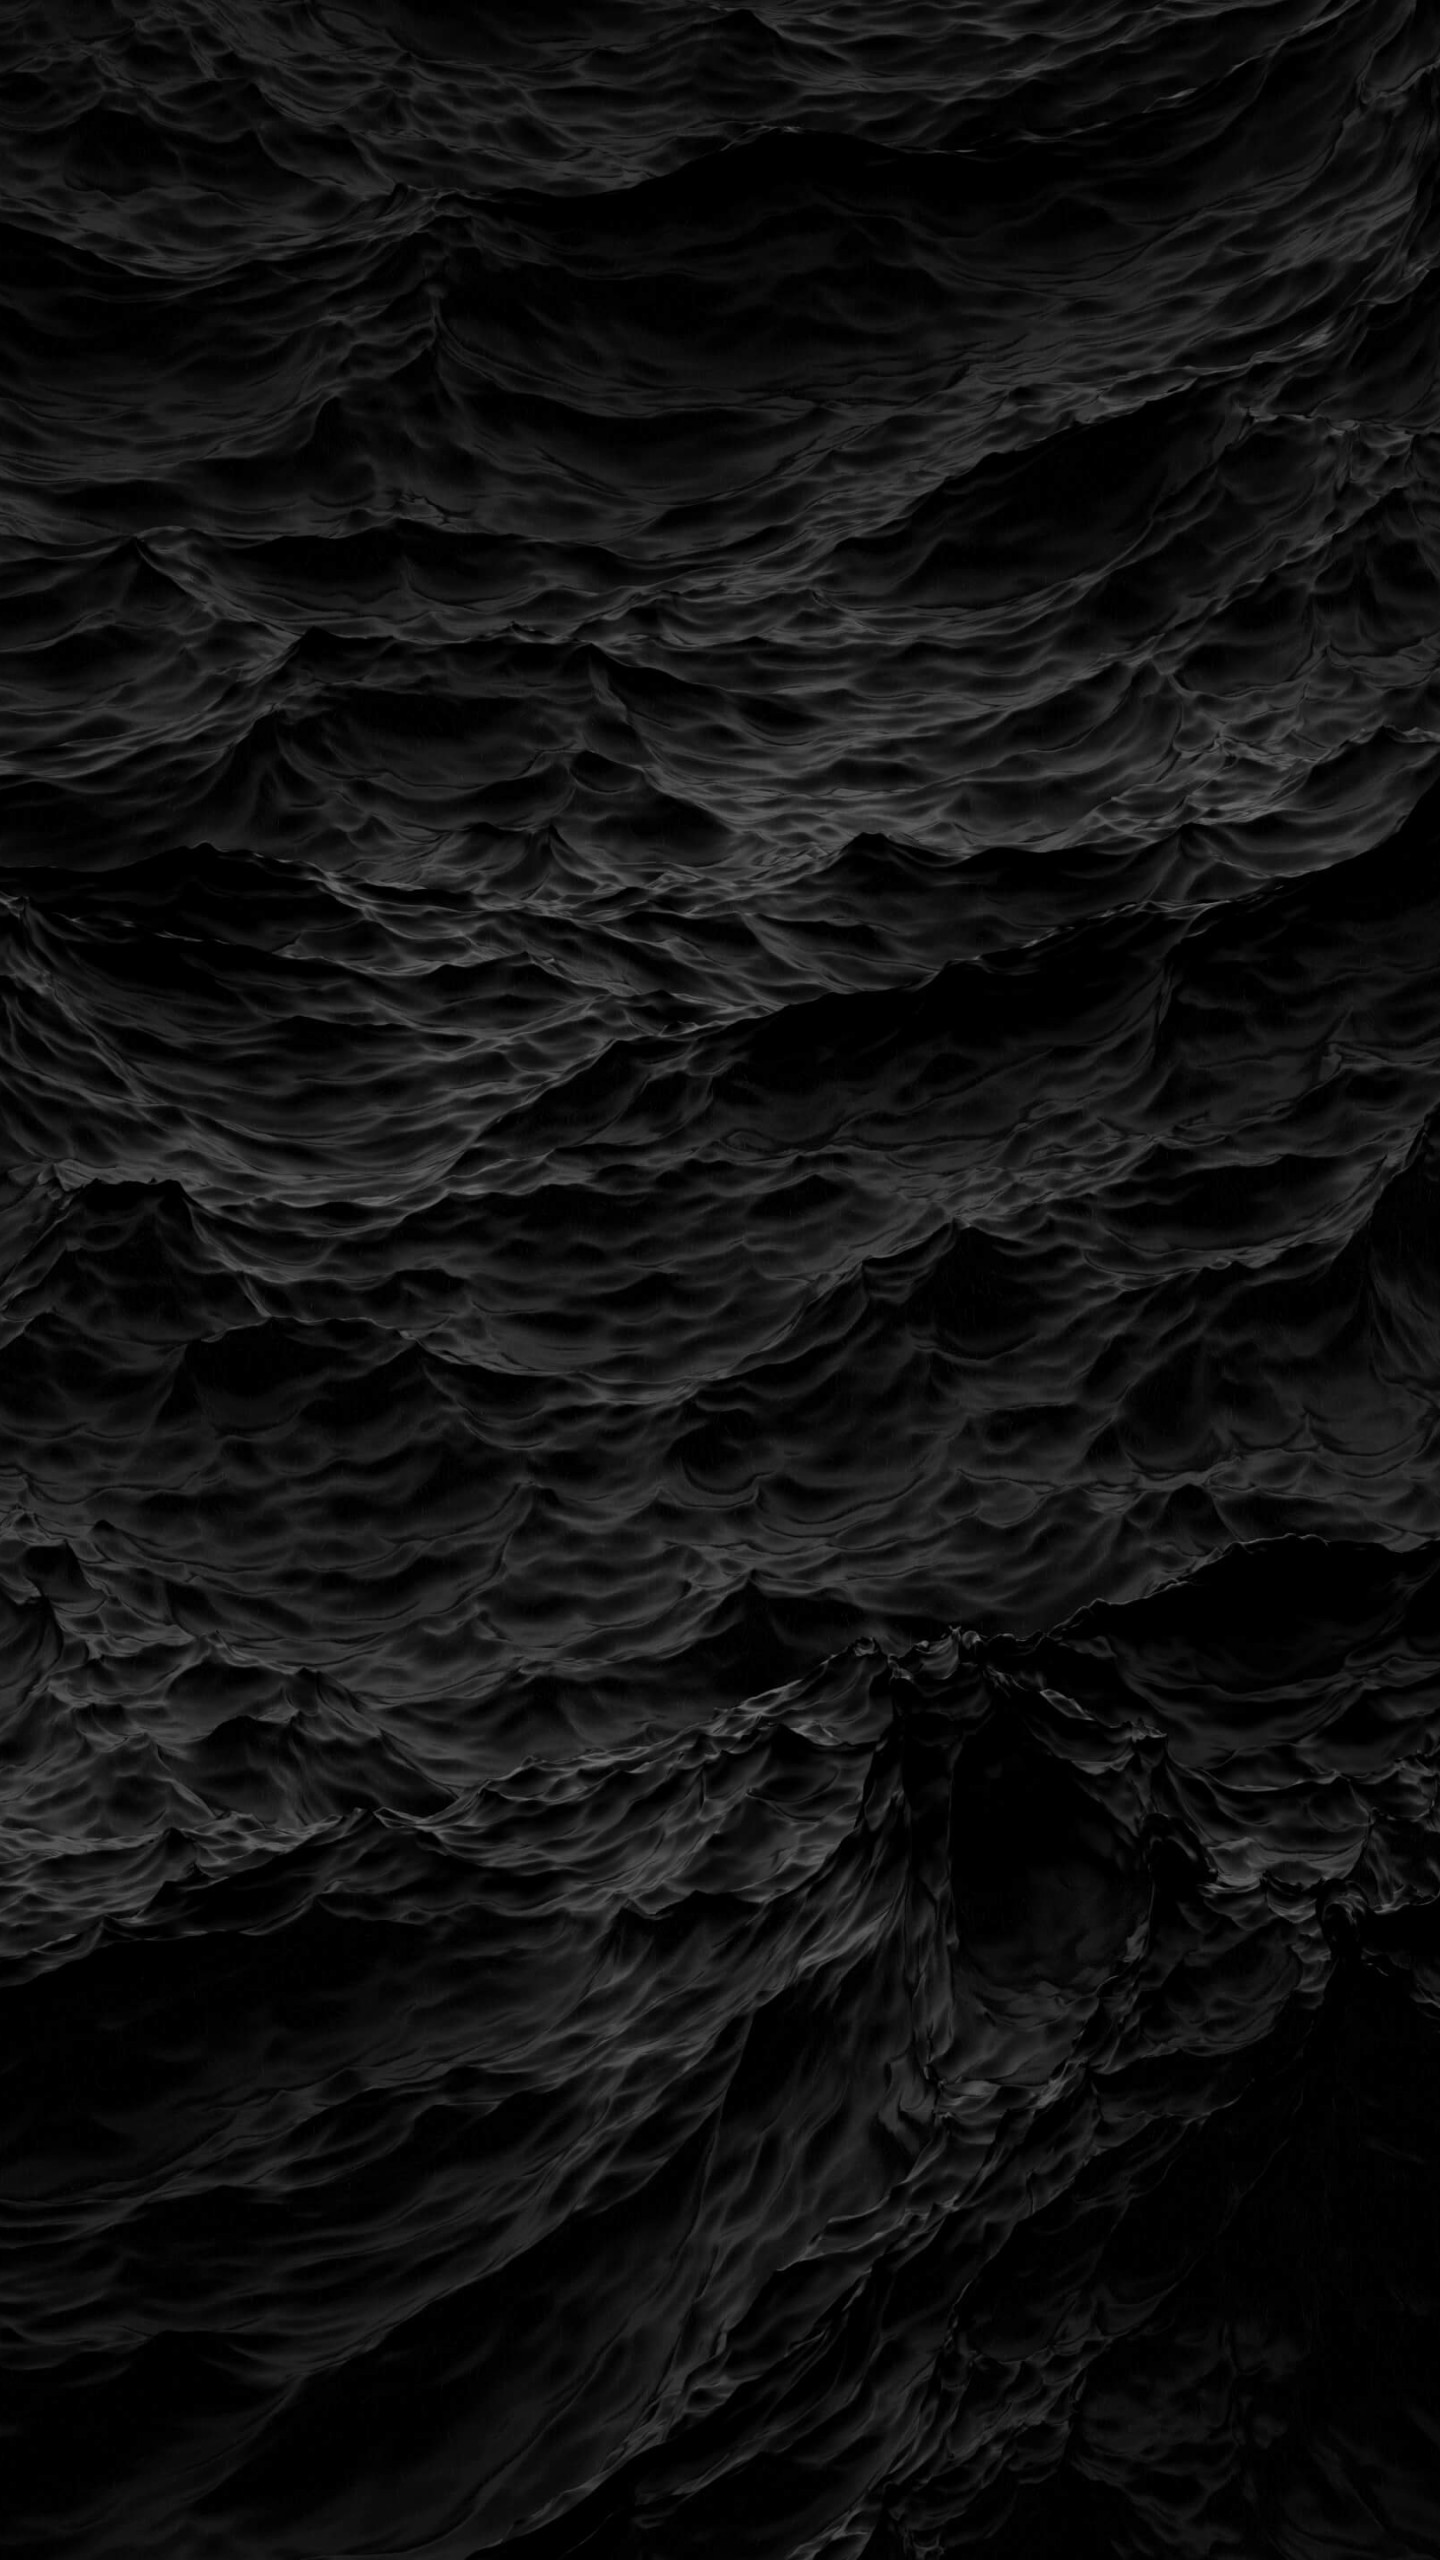 Black Waves Wallpaper for SAMSUNG Galaxy Note 4